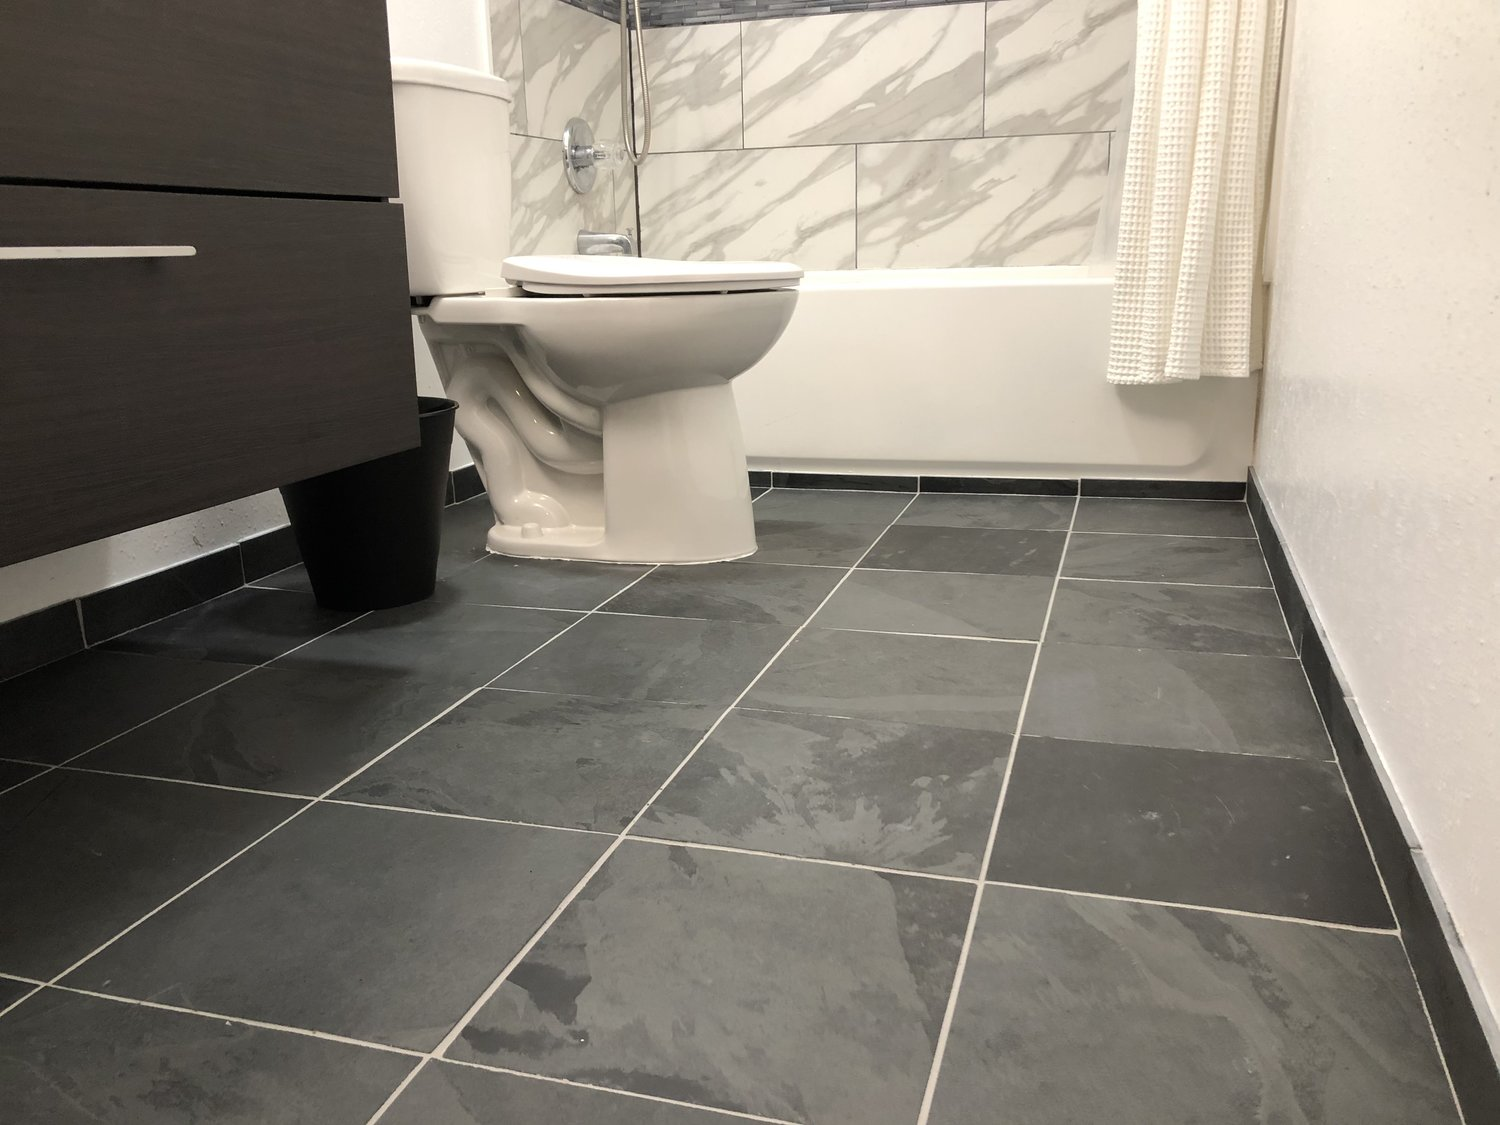 Finished floor with tile baseboards to make the entire floor waterproof!